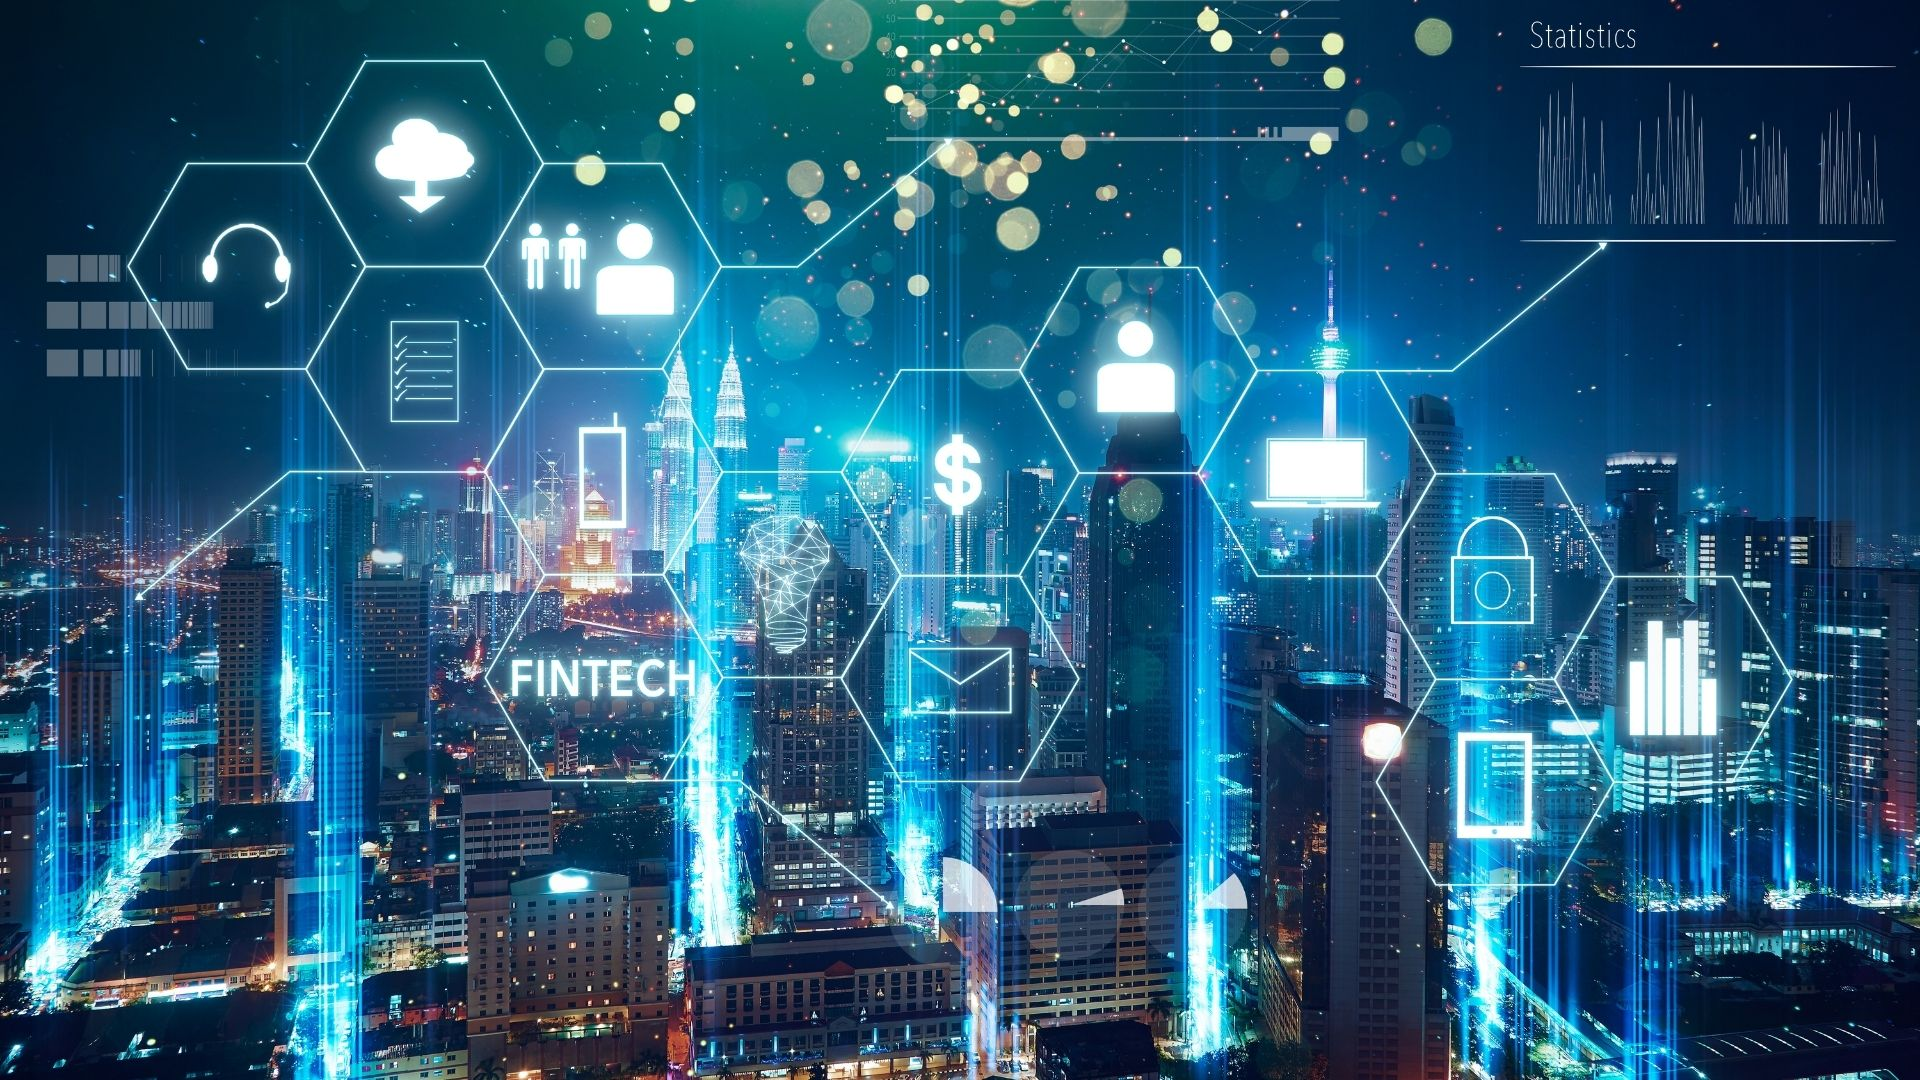 Will there be a post-Brexit fintech boom? 41